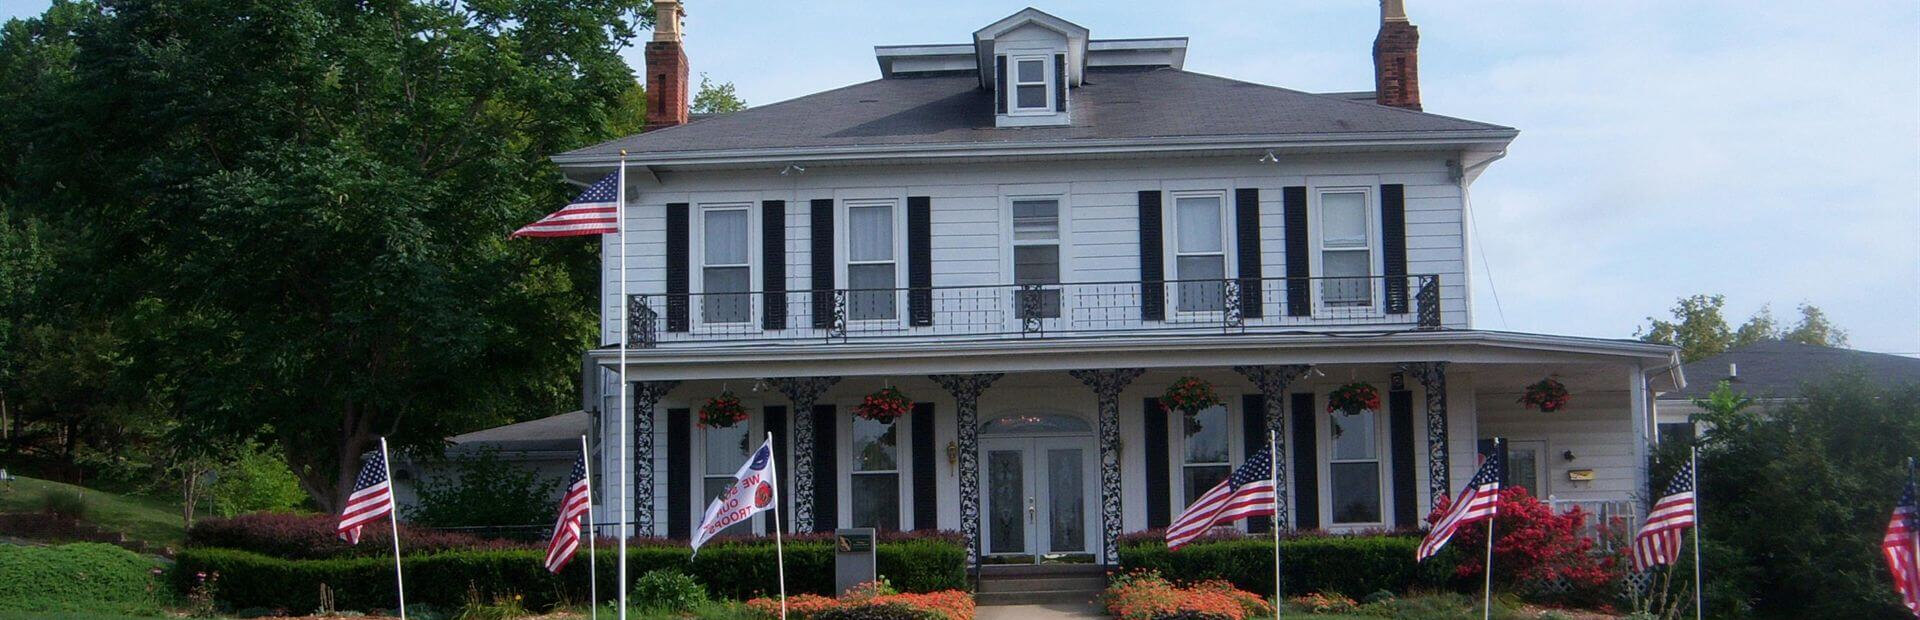 Malone Funeral Home in Grayson, KY